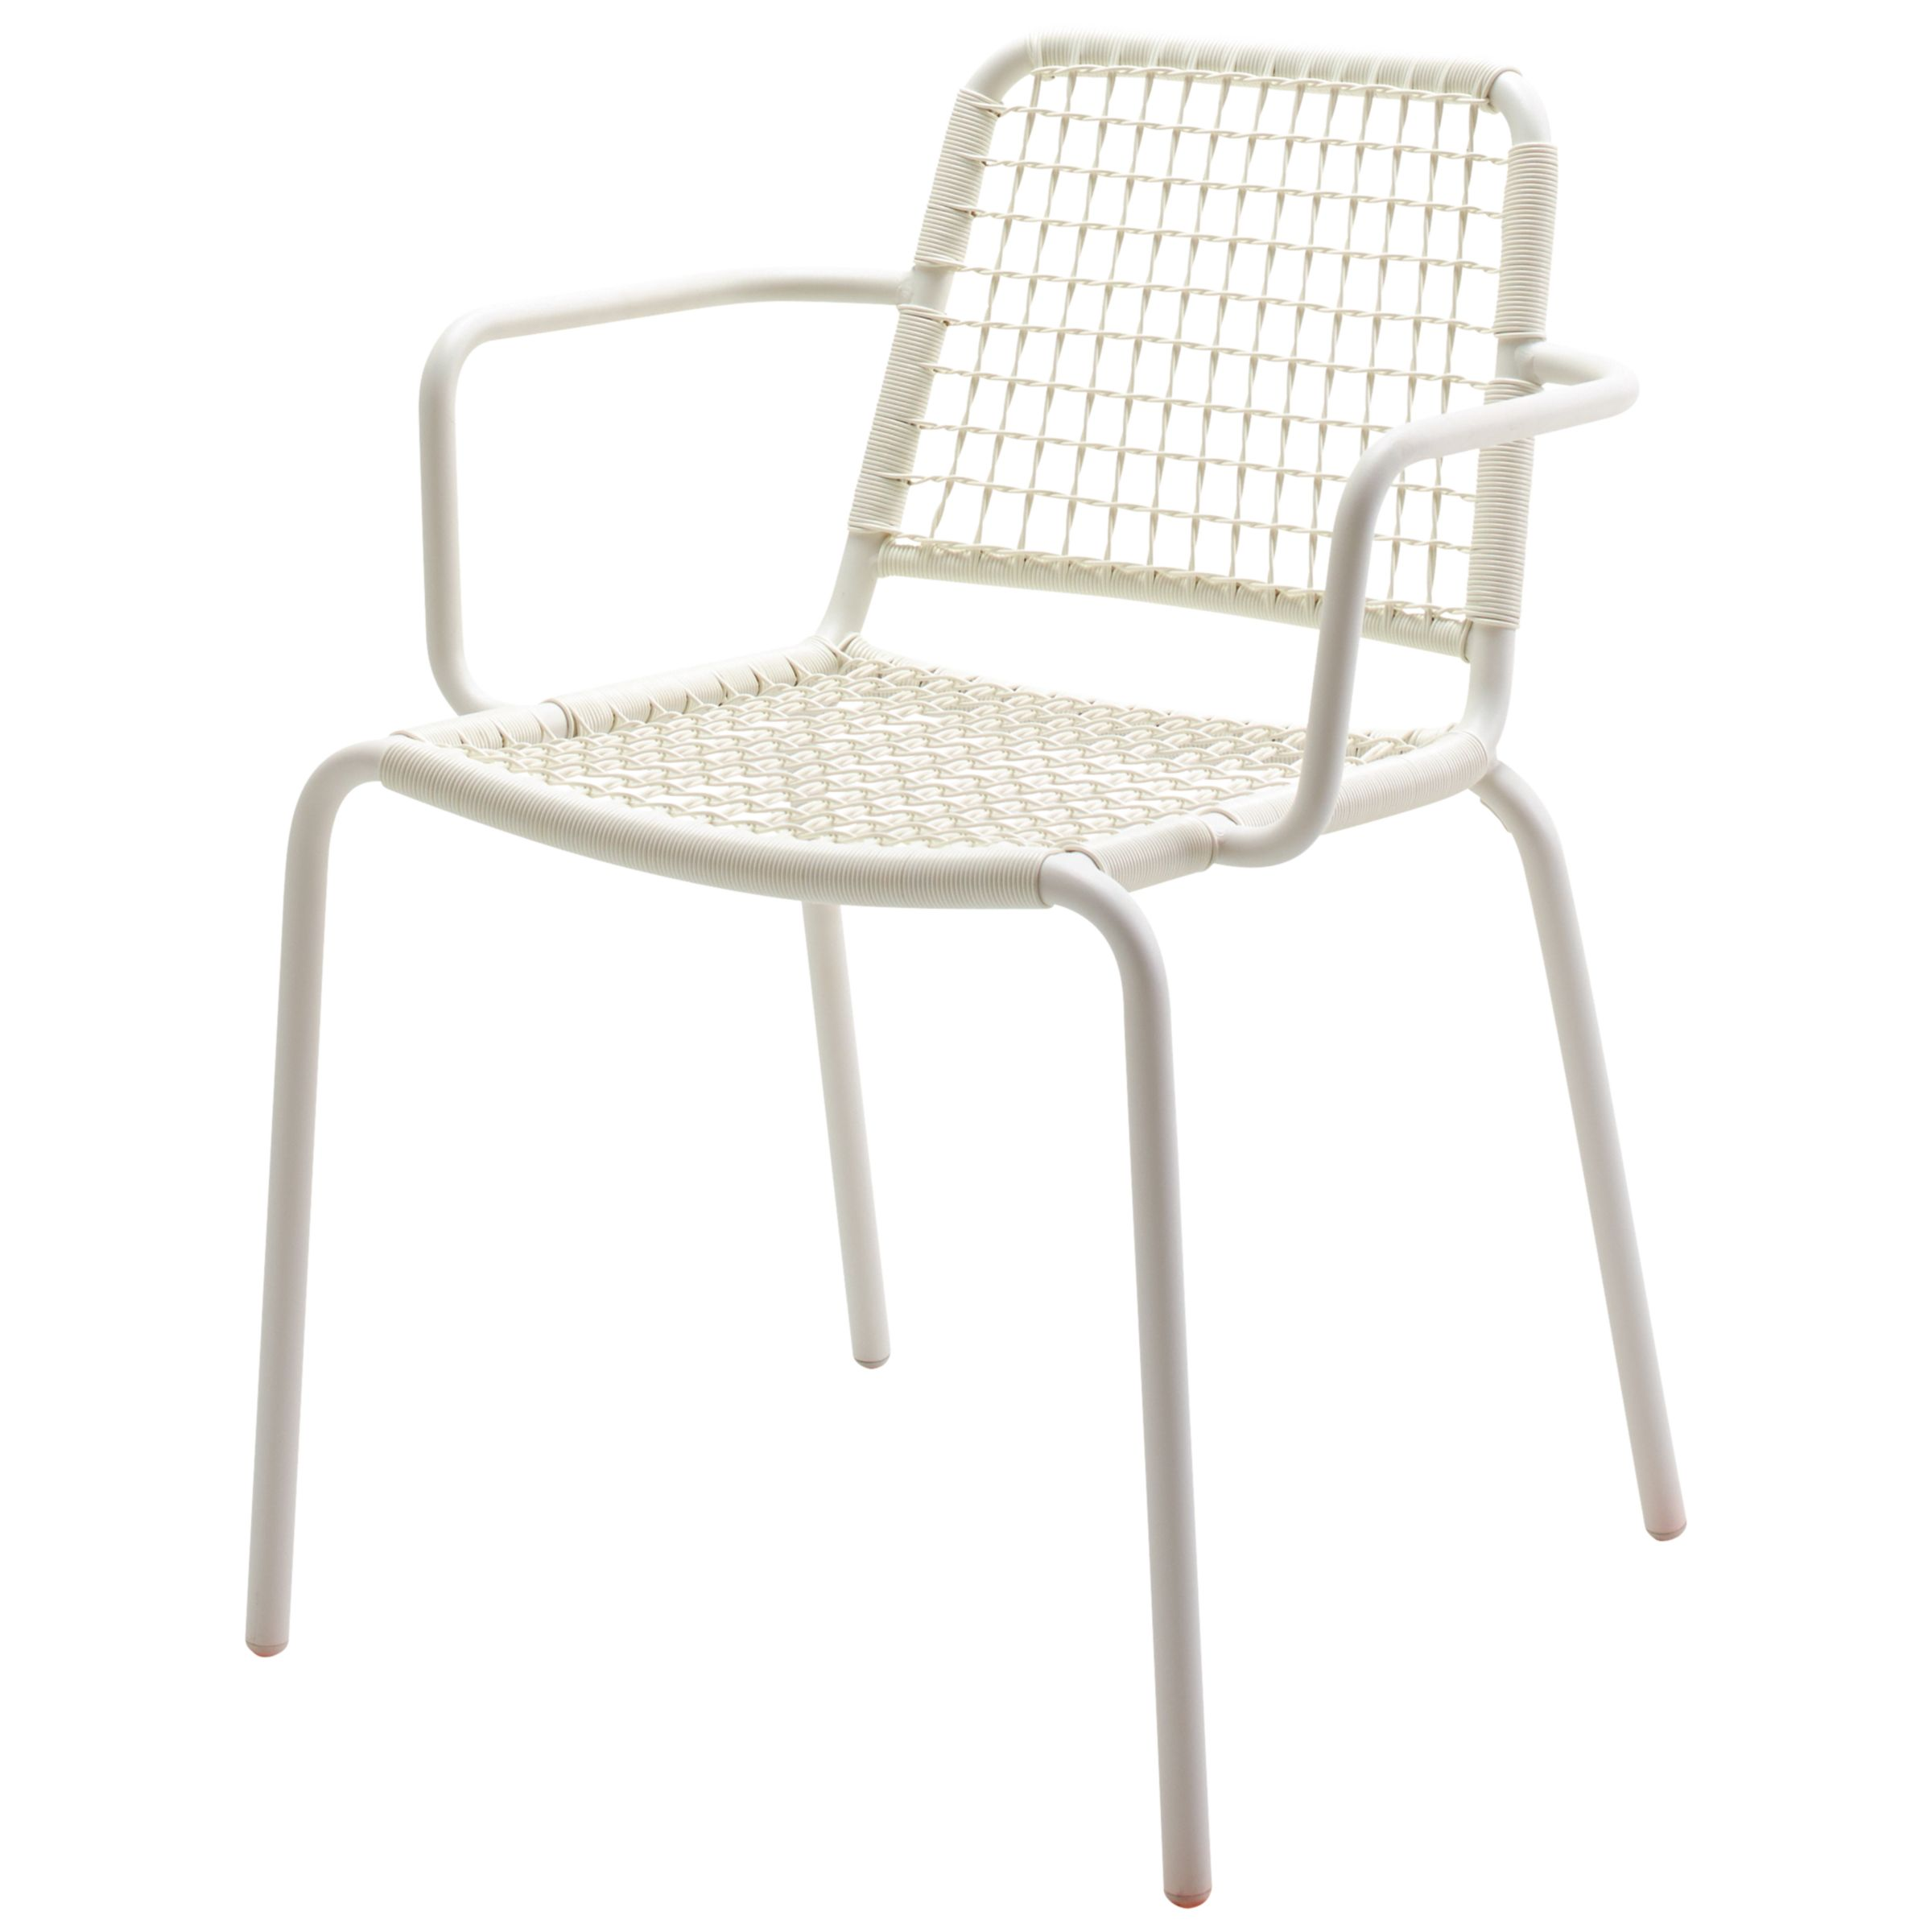 Gloster Nomad Woven Stacking Chair with Arms, White